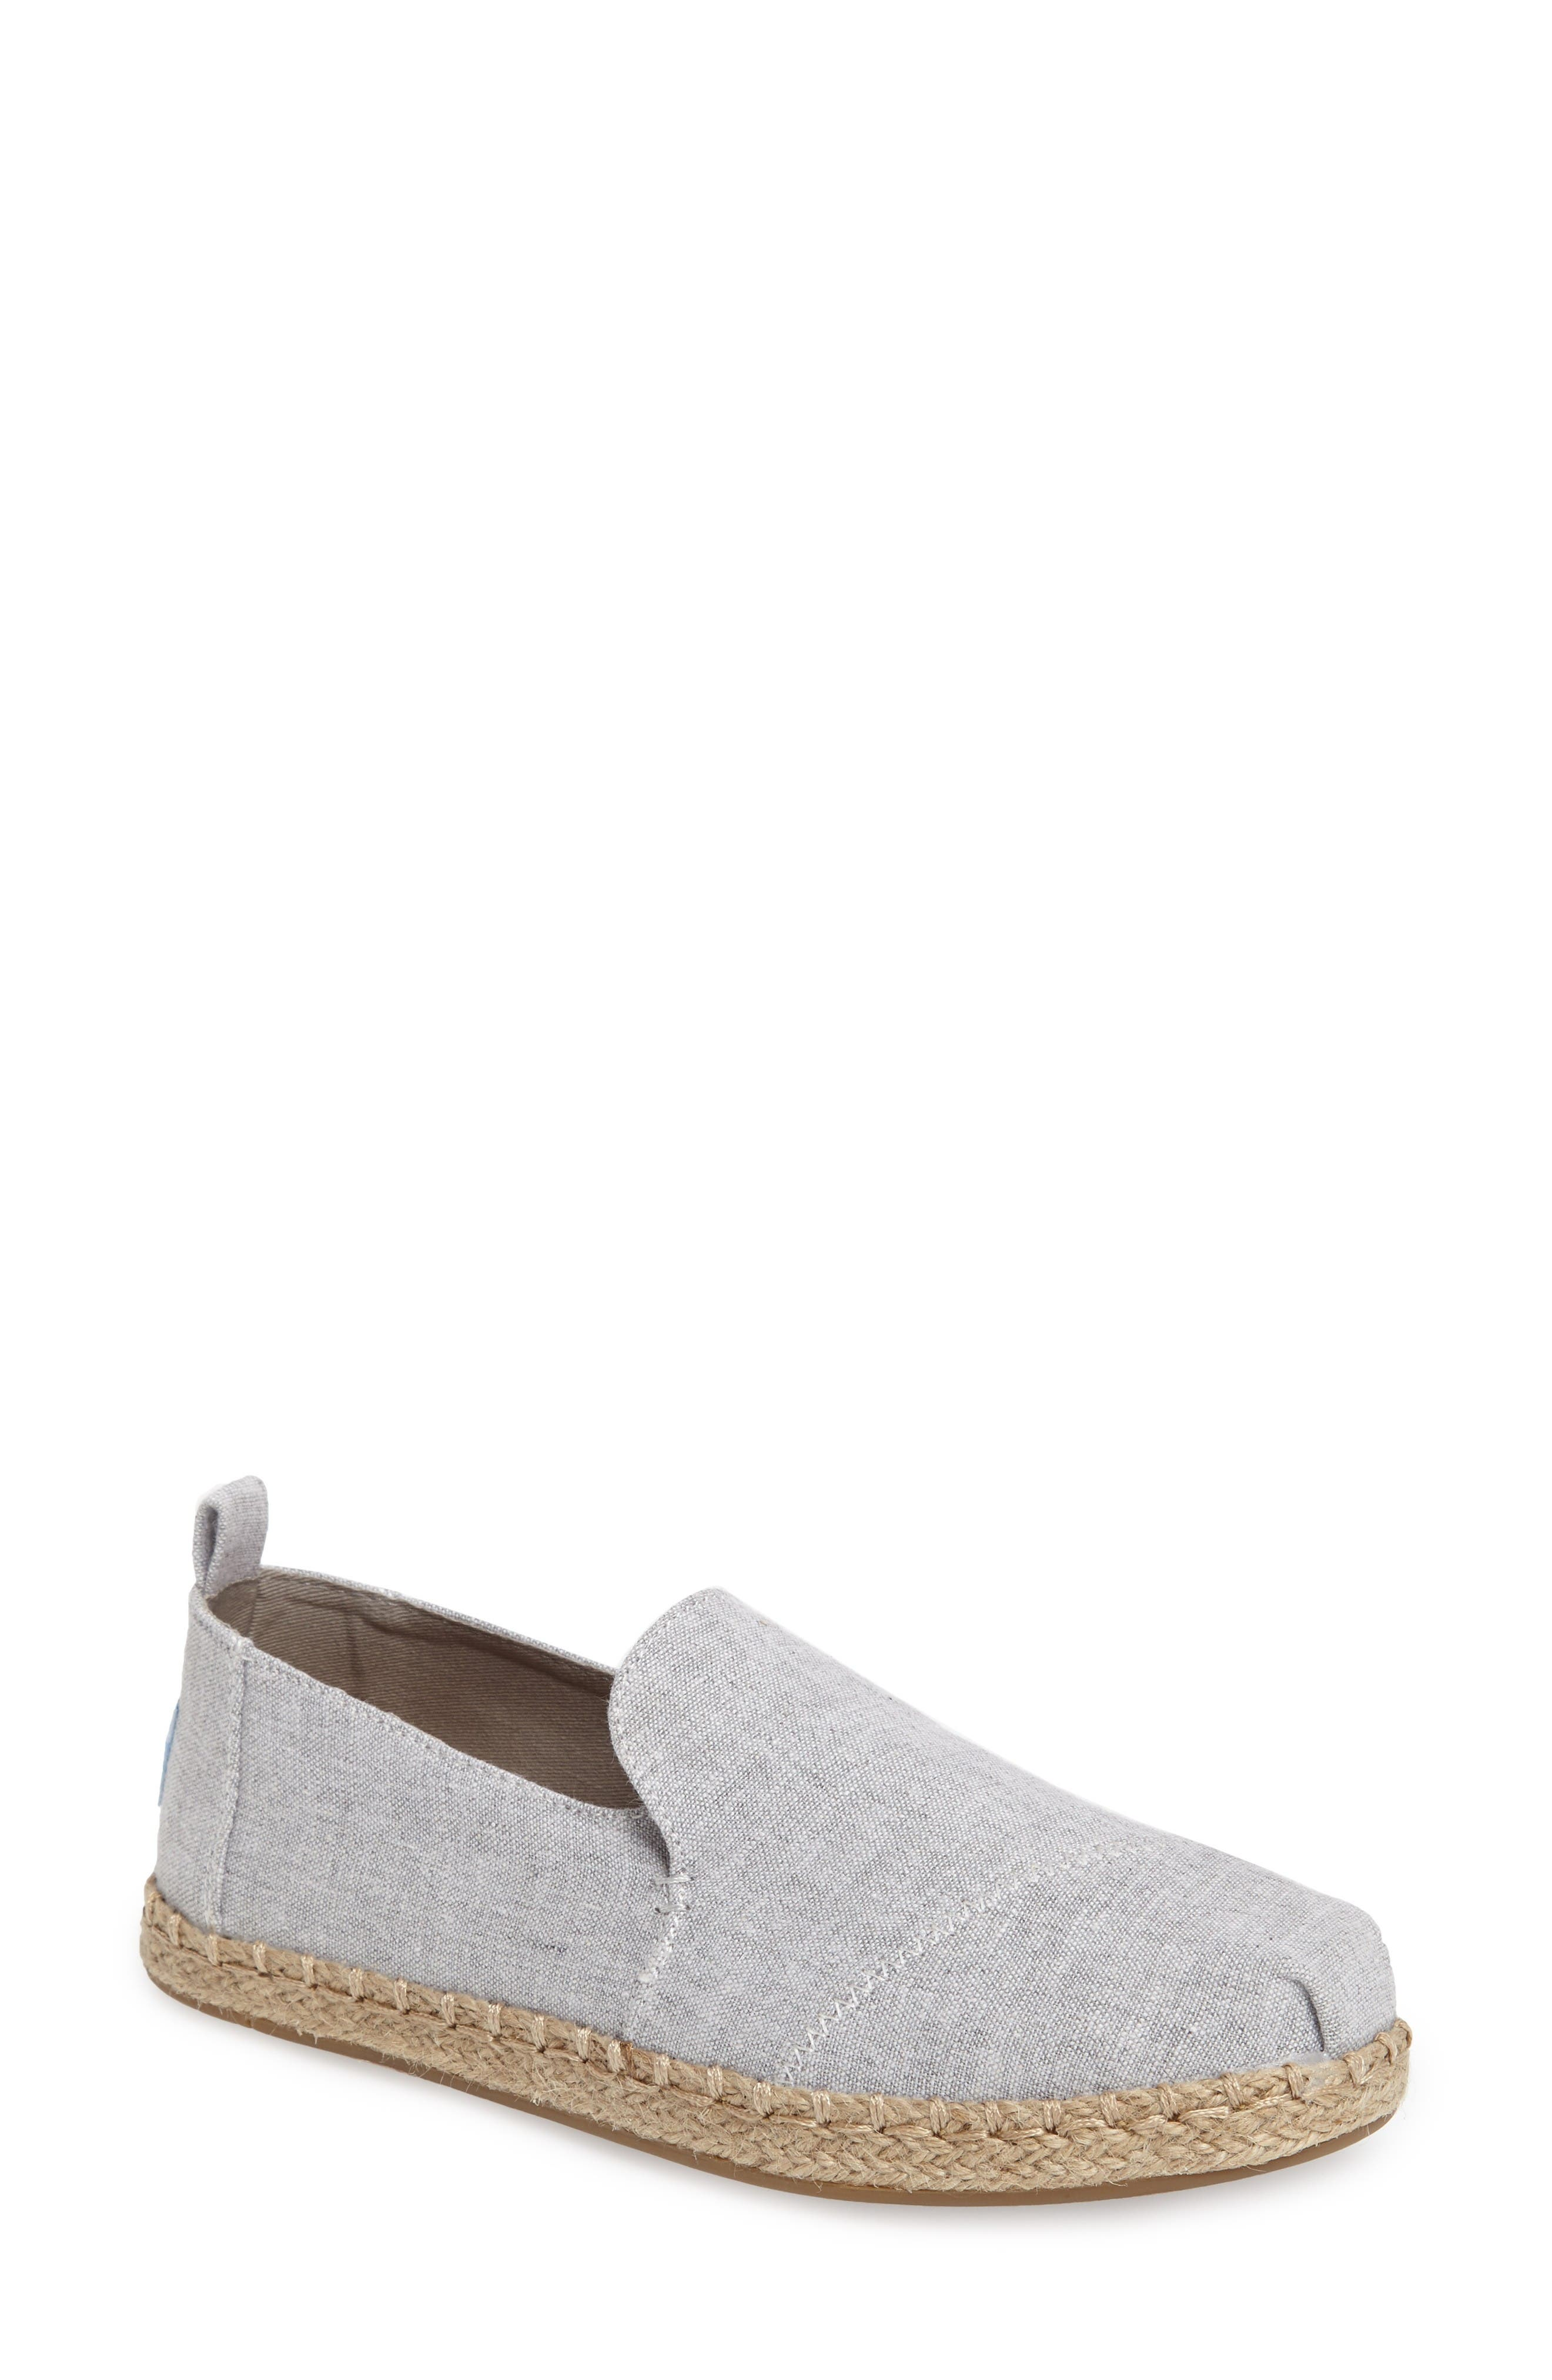 Espadrille Slip-On,                             Main thumbnail 1, color,                             Grey